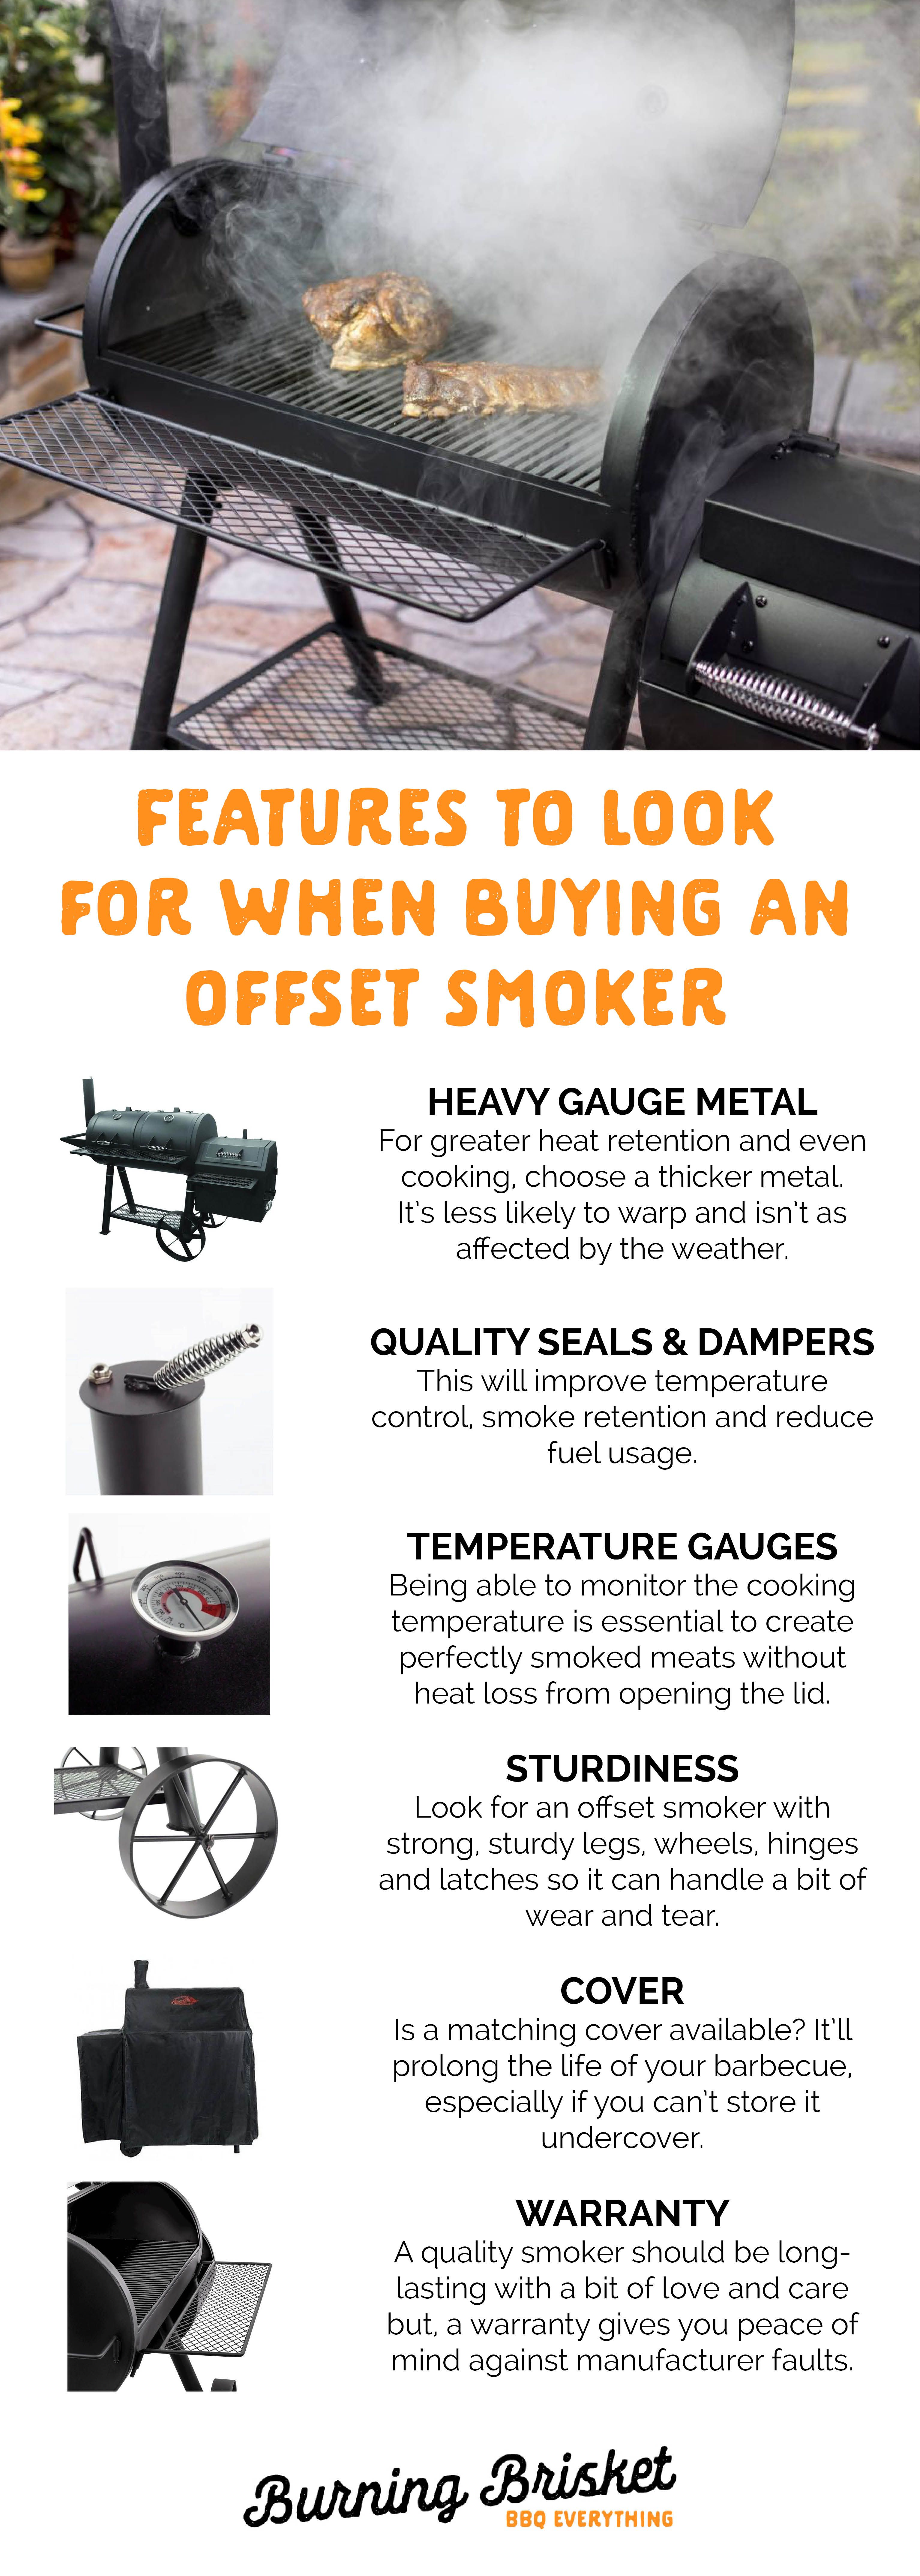 Playing With Fire And Smoke Brisket Manual Guide